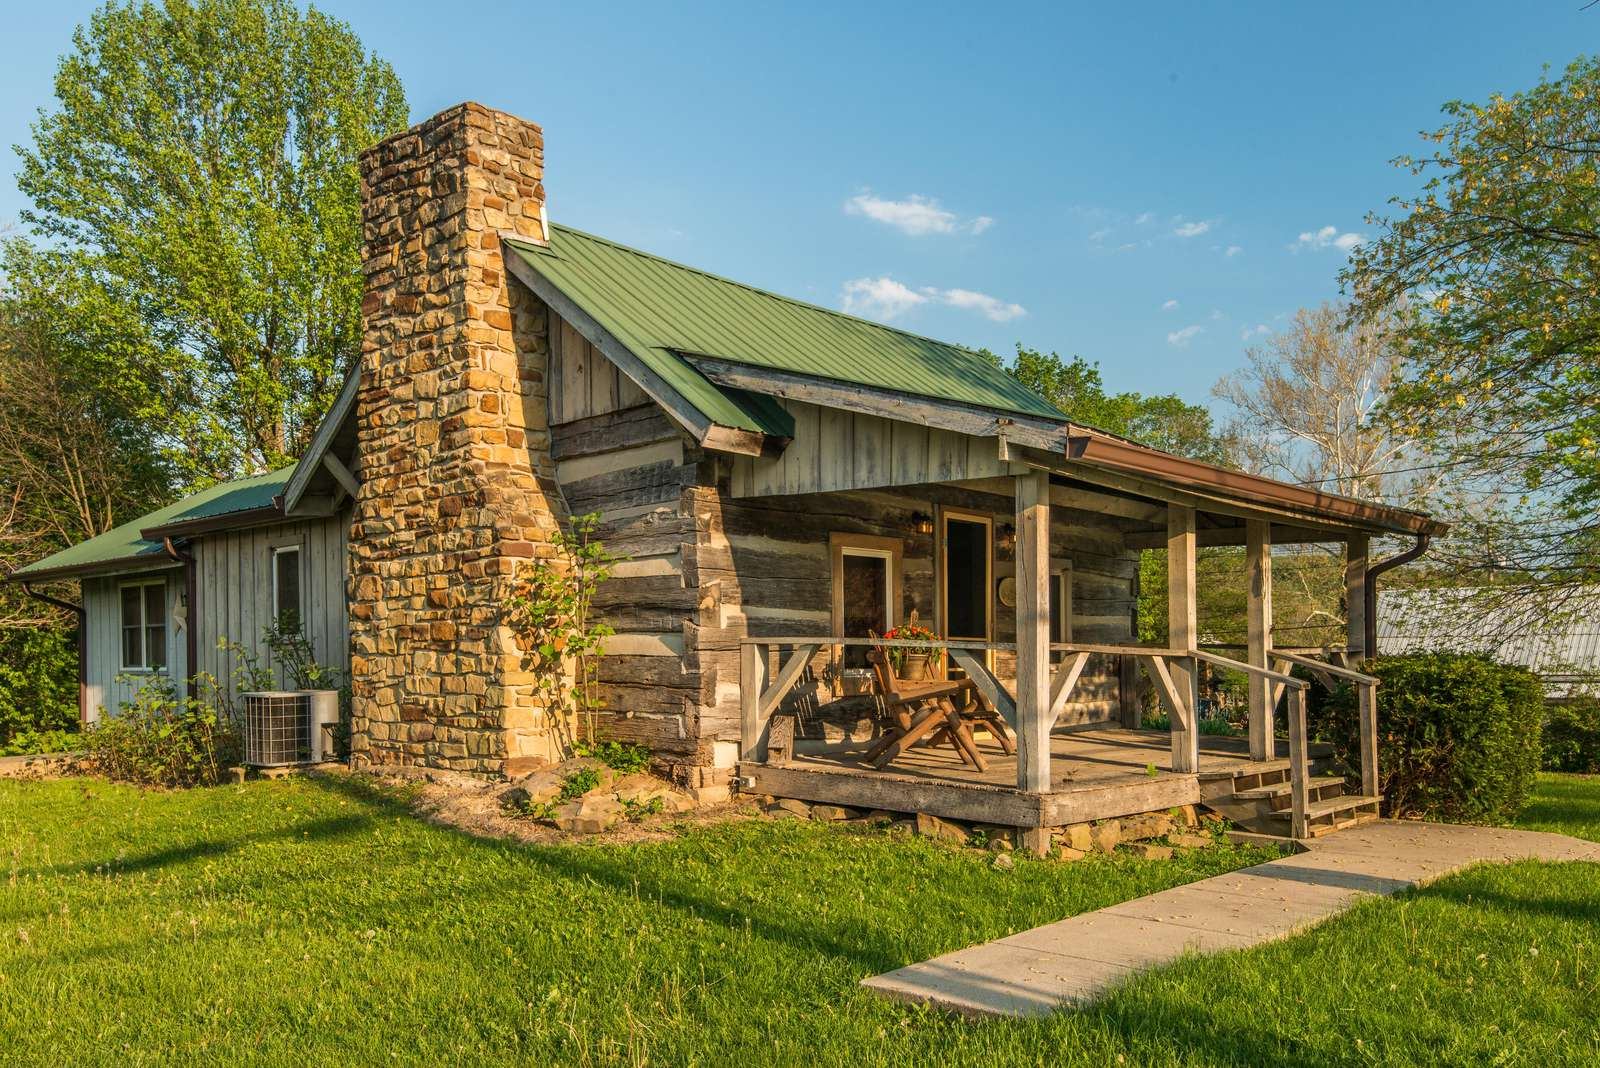 Bean Blossom Vacation Cabin - property